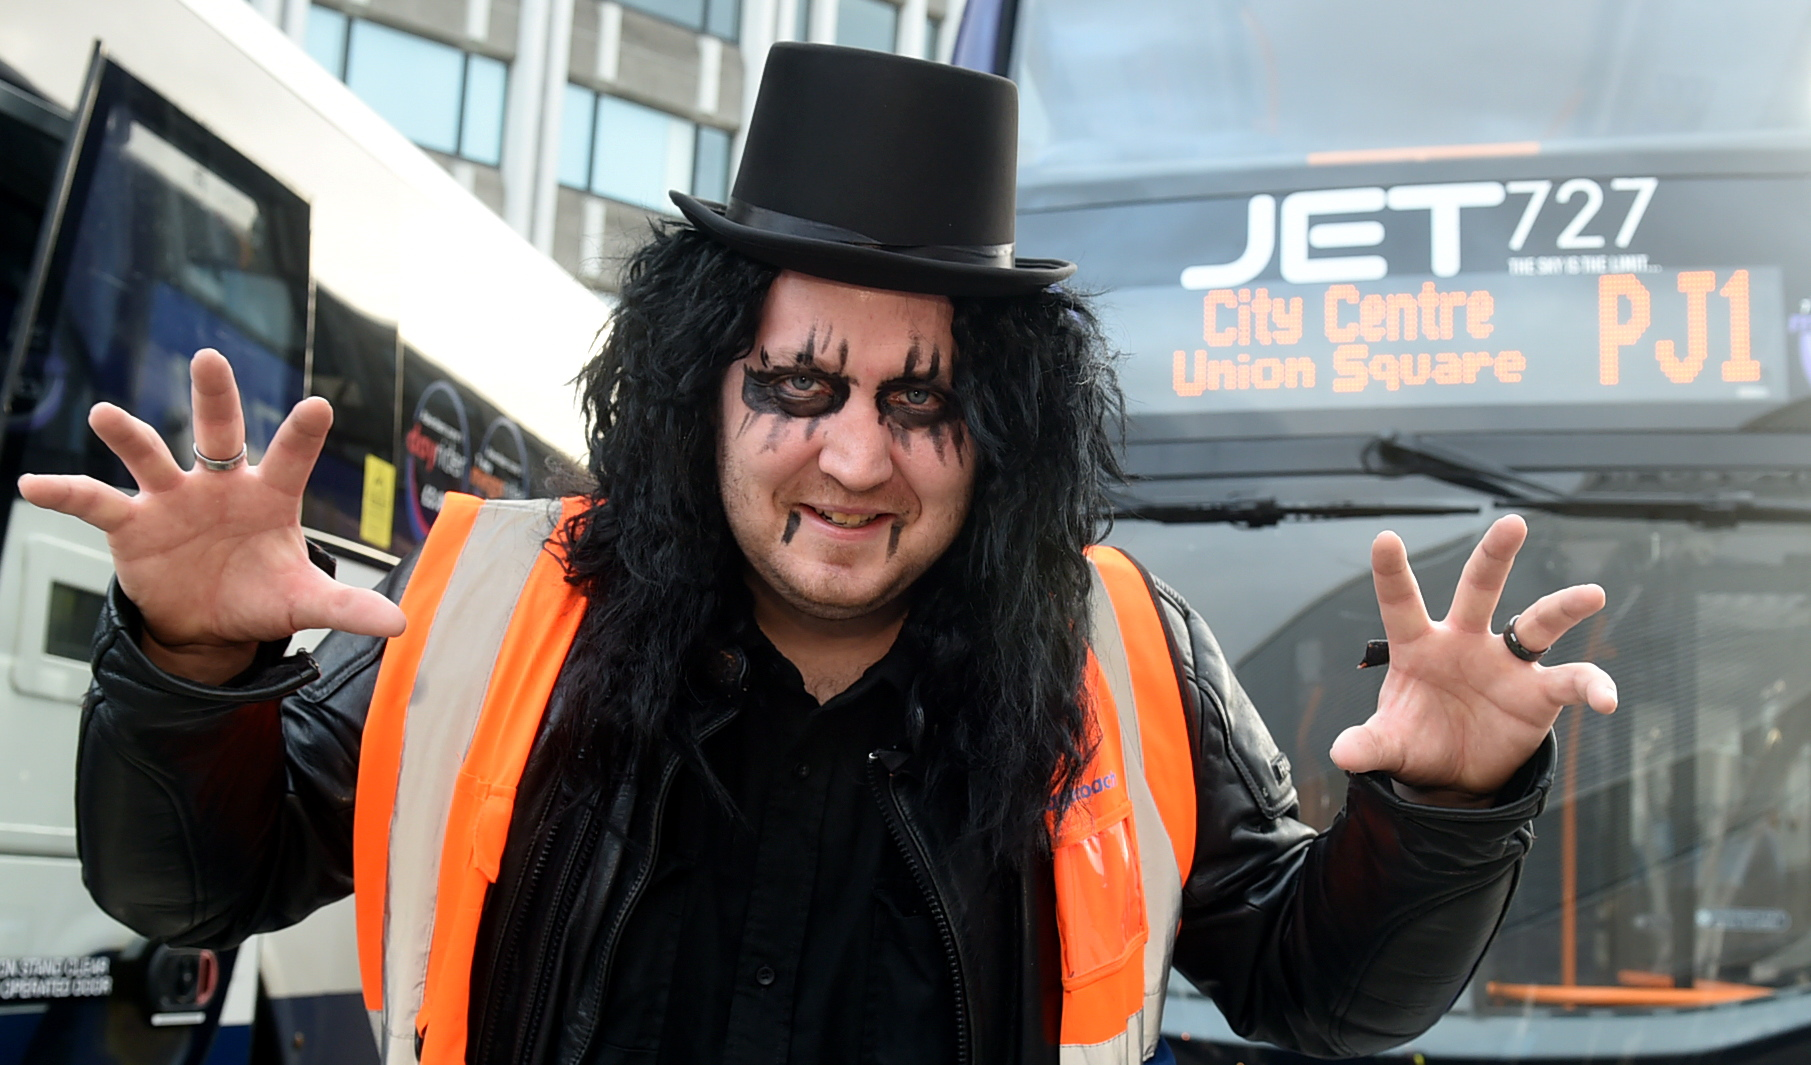 Mark Goodall has dressed as Alice Cooper for his shift ahead of the gig on Saturday at the P&J Live.